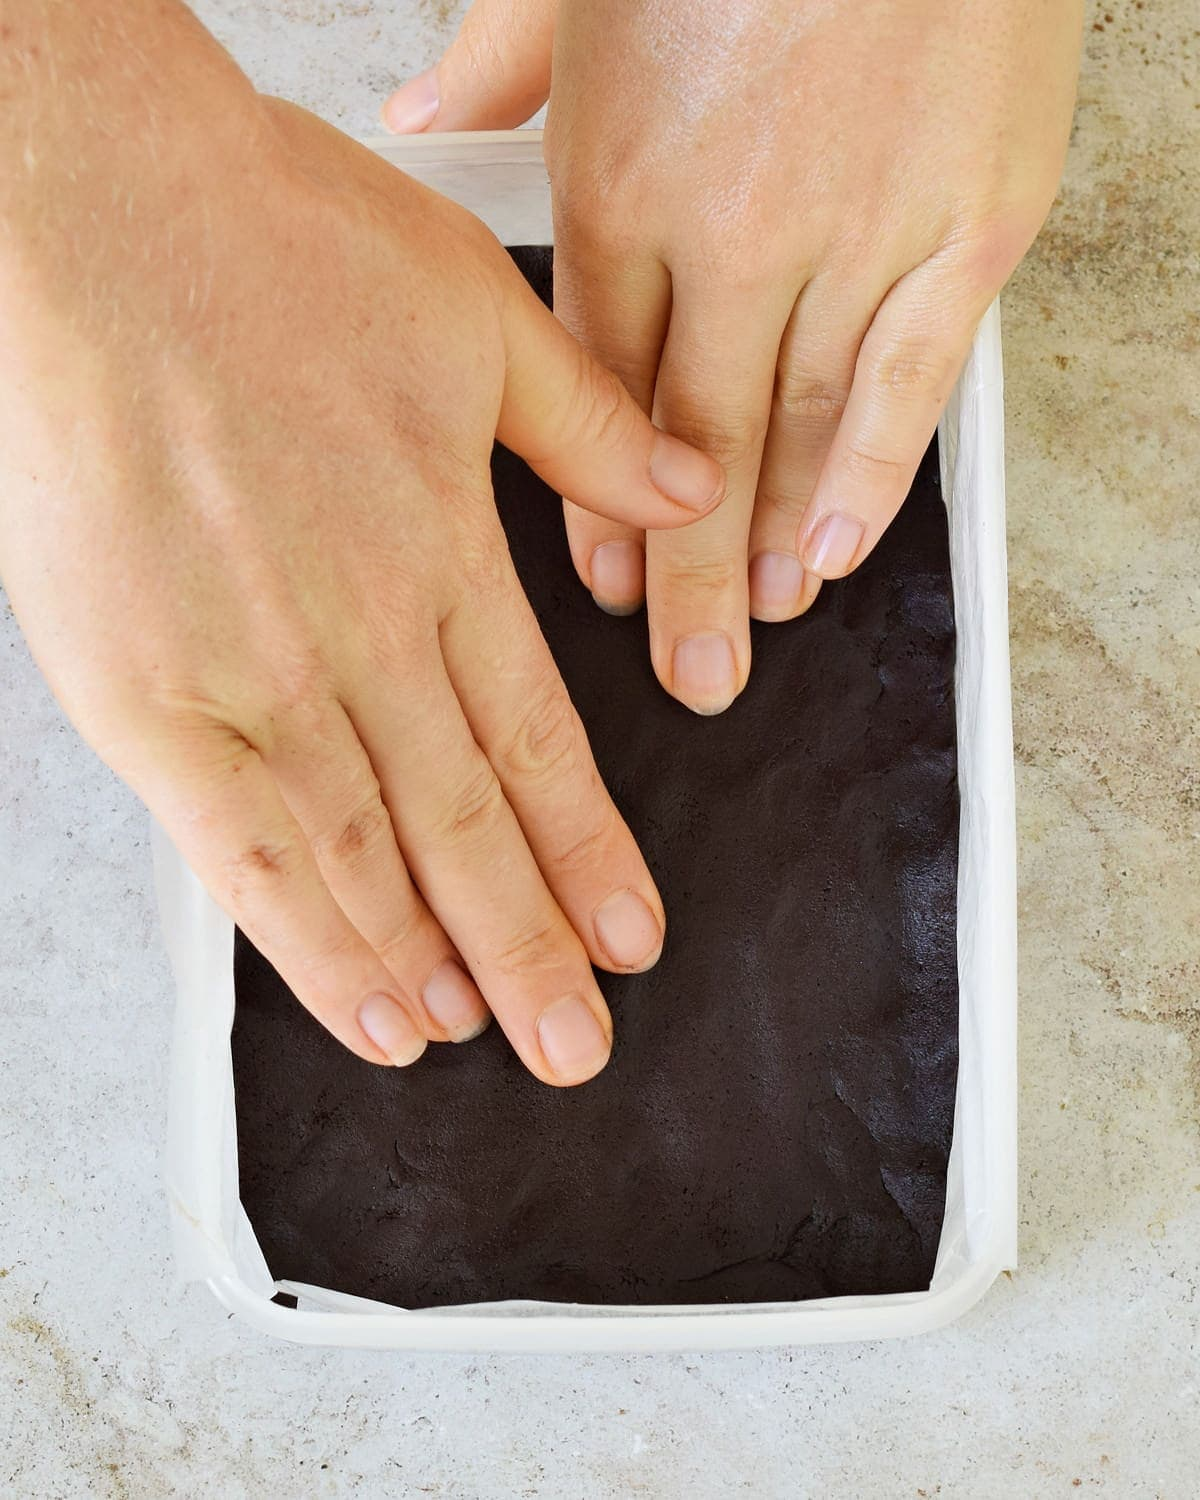 hands spreading chocolate dough in rectangular plastic mold